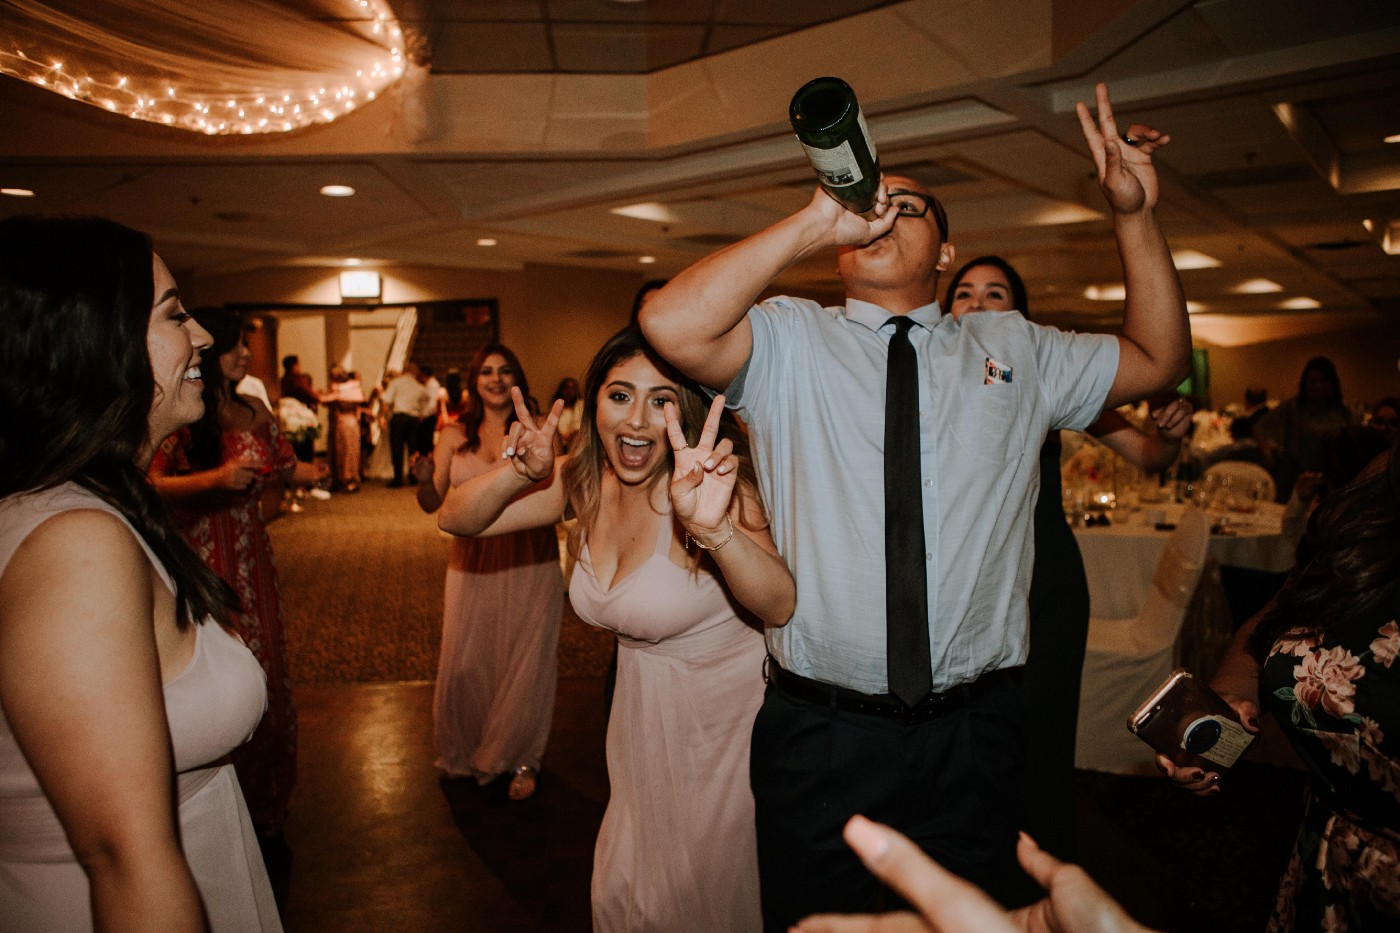 How To Dance At A Wedding.How To Survive A Wedding Sober P S I Love You